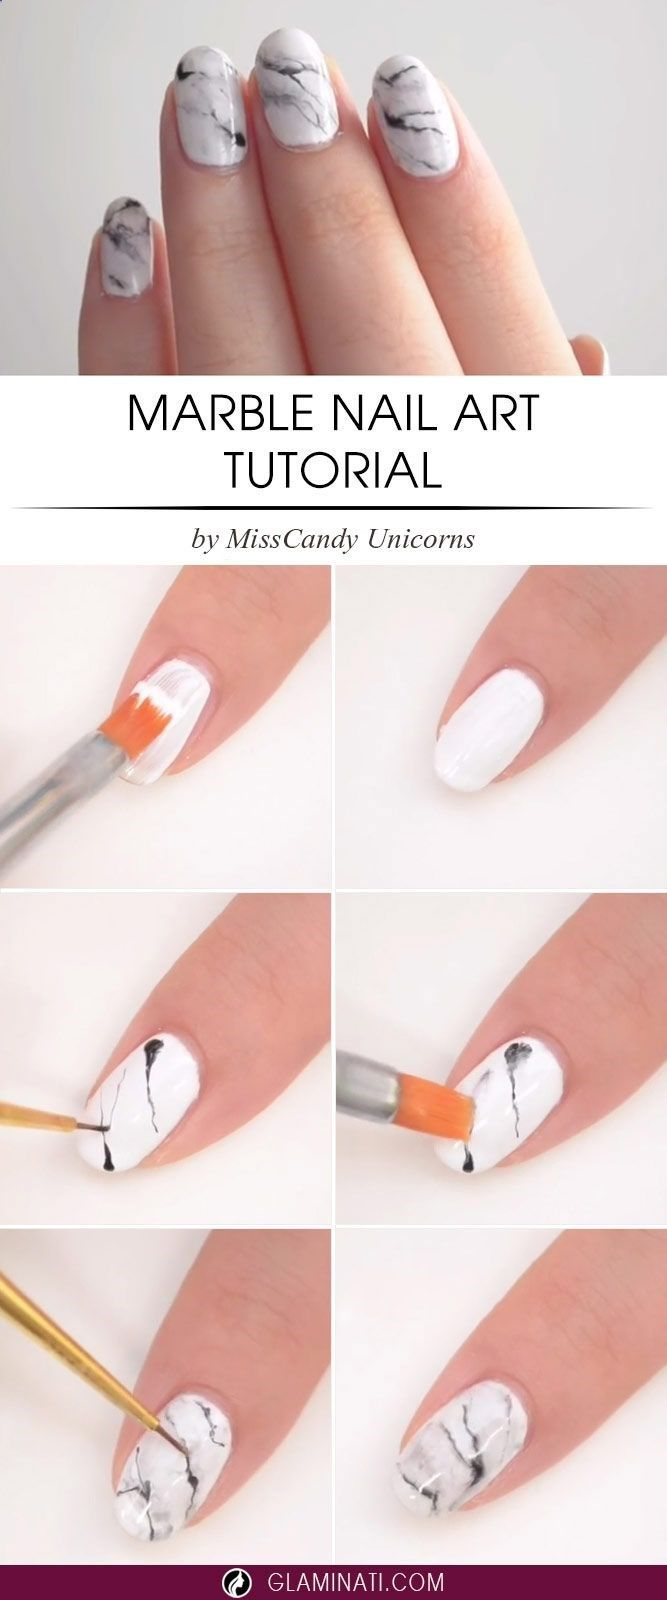 Best 25 nail art tutorials ideas on pinterest easy nail designs diy marble nail art design tutorial step by step marble nails nailart nails prinsesfo Image collections